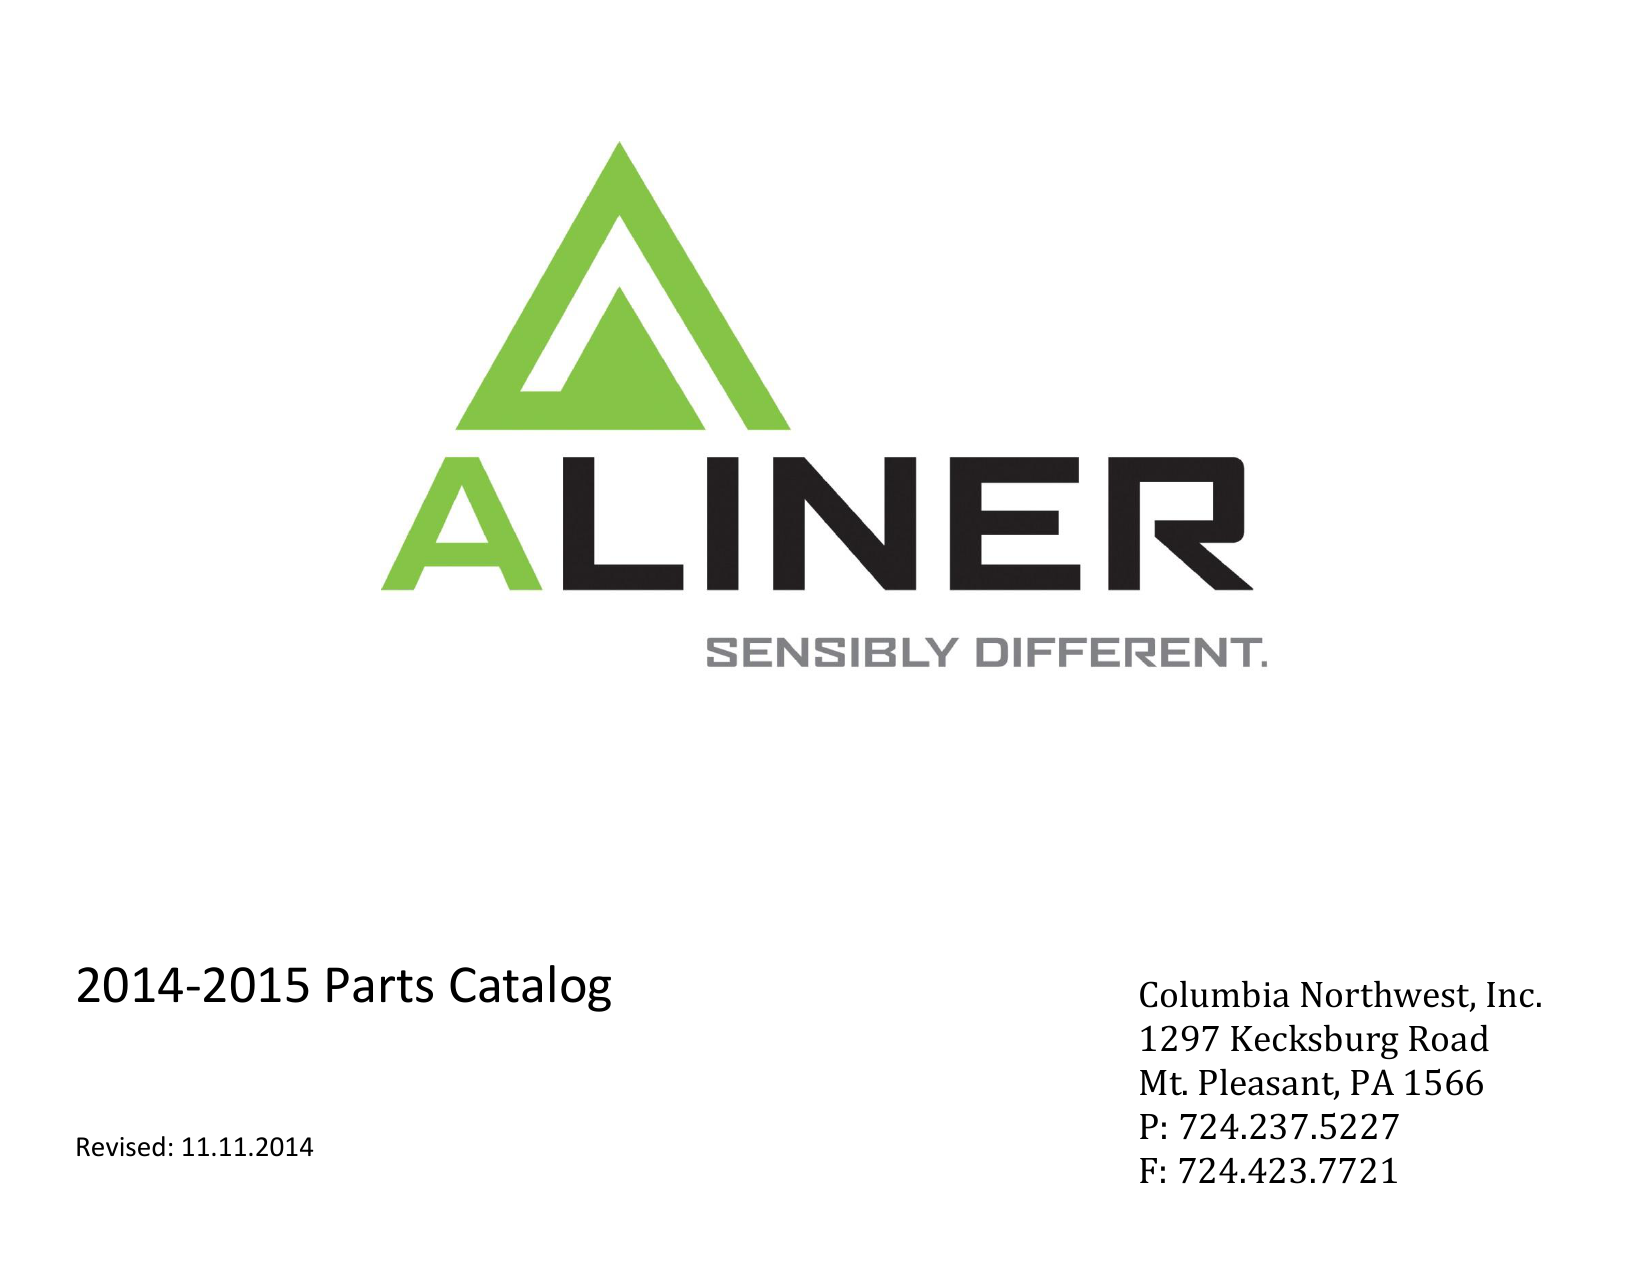 Download our 2014-2015 Parts Catalog - Aliner